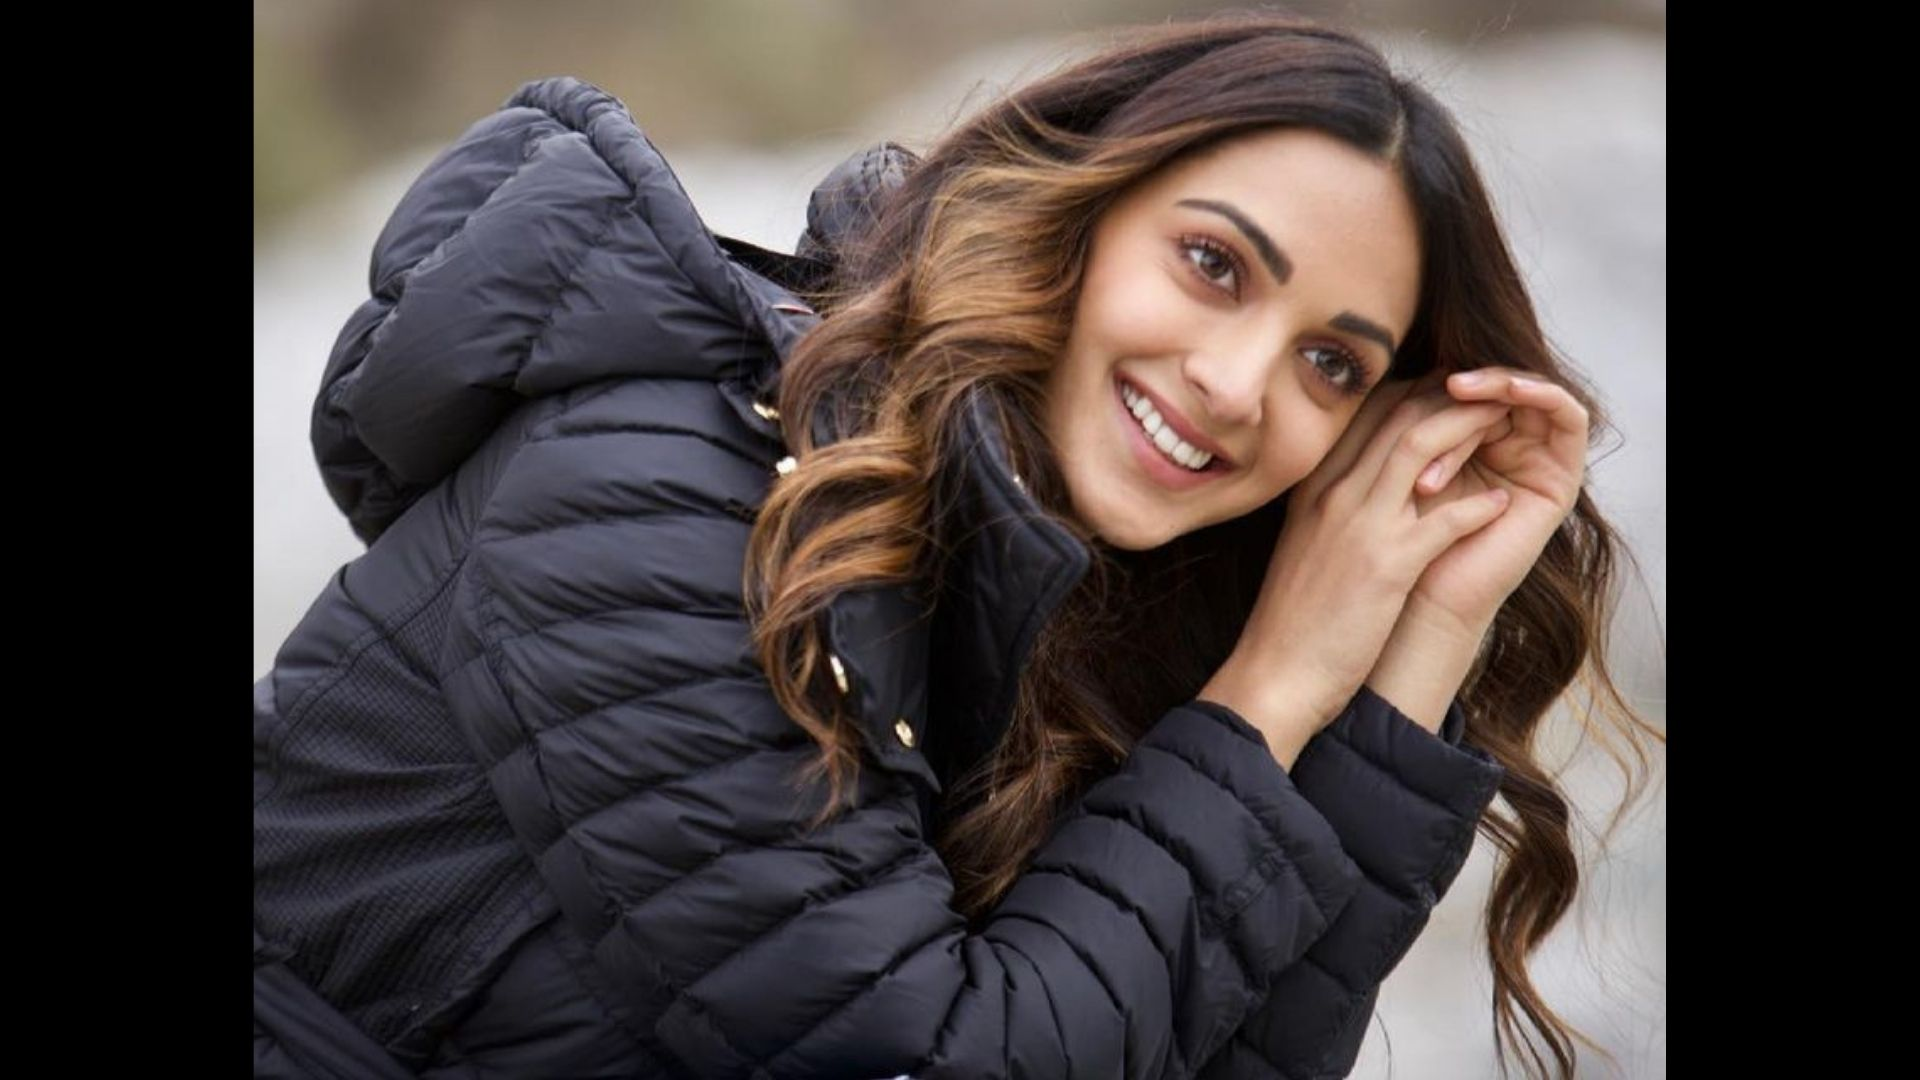 Kiara Advani Shares Yet Another Cryptic Post About 'Spending Time With Special People'; Is Sidharth Malhotra Listening?